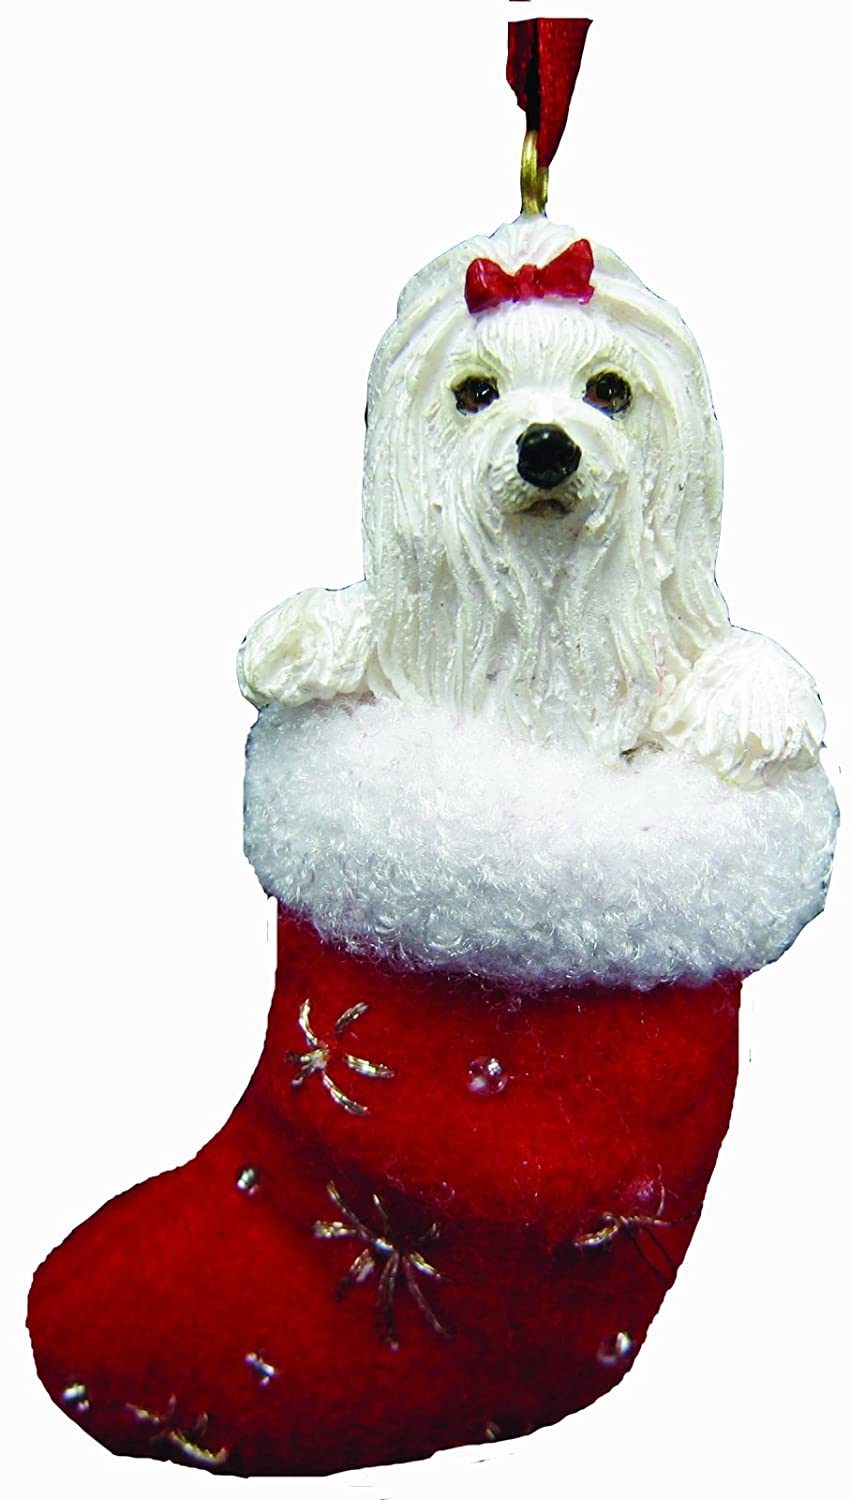 Maltese christmas ornaments - Amazon Com Maltese Christmas Stocking Ornament With Santa S Little Pals Hand Painted And Stitched Detail Pet Supplies